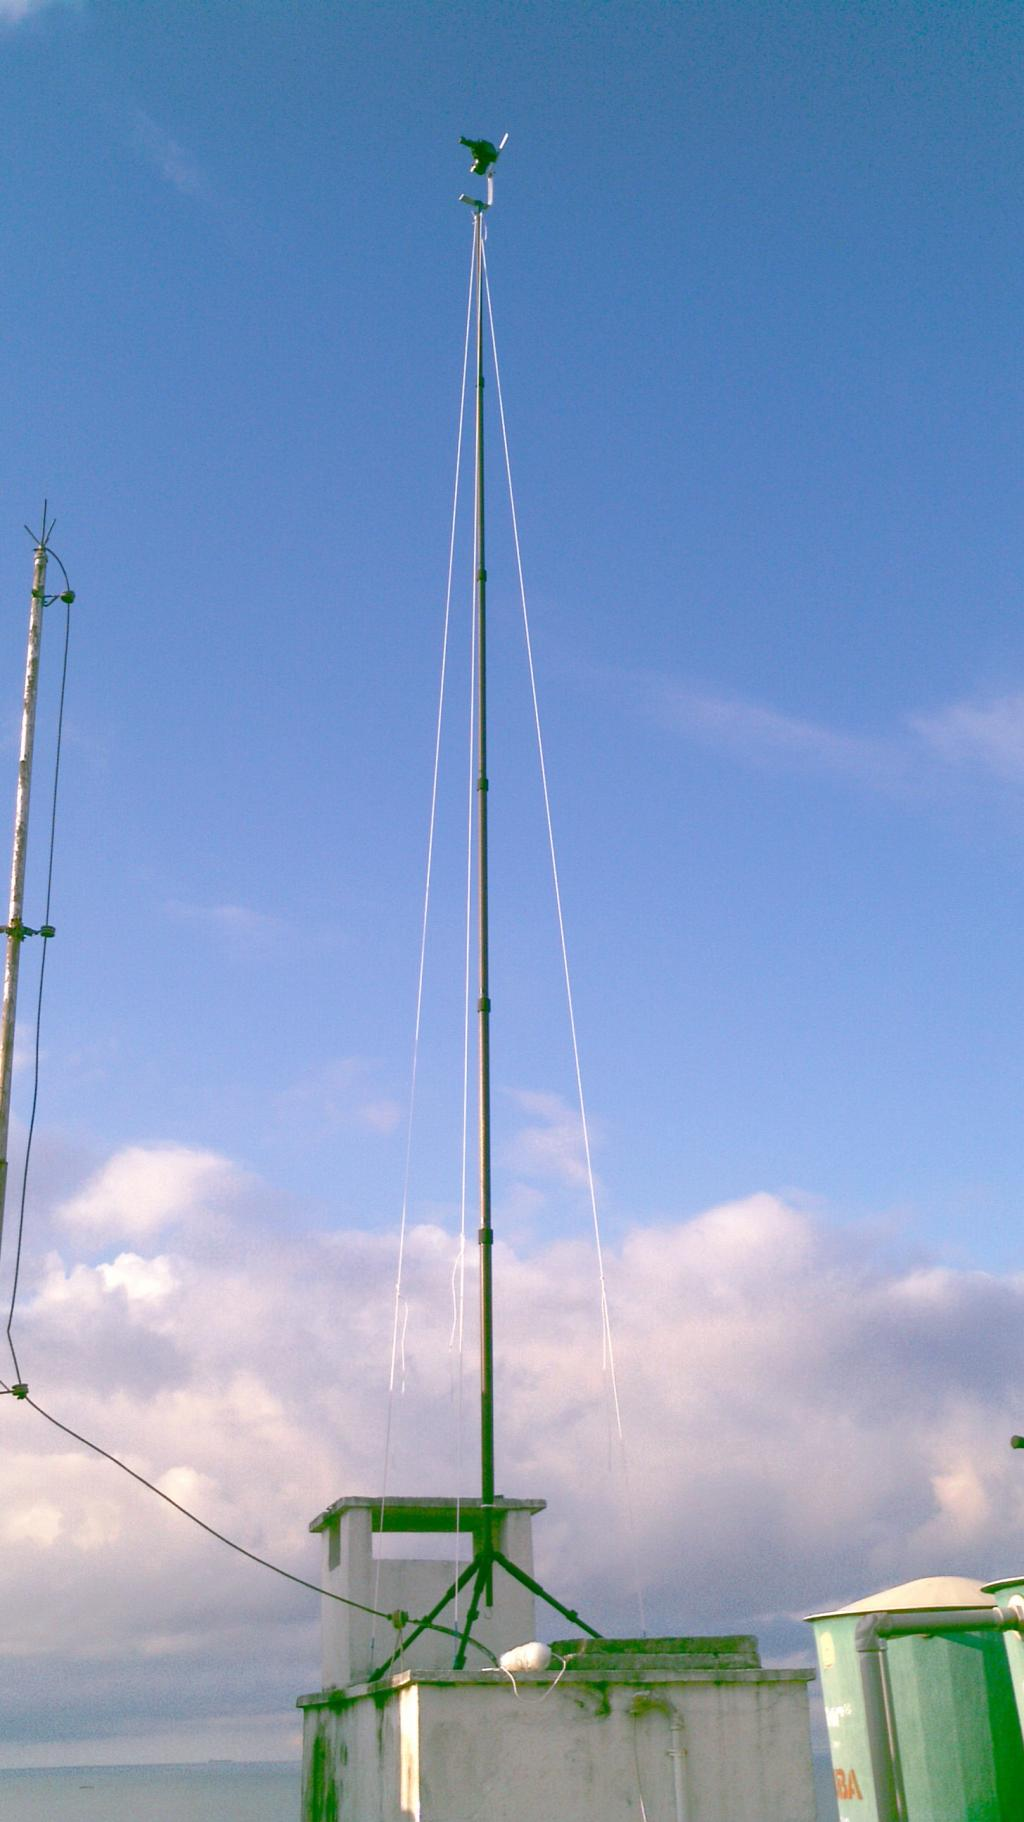 Pole in action